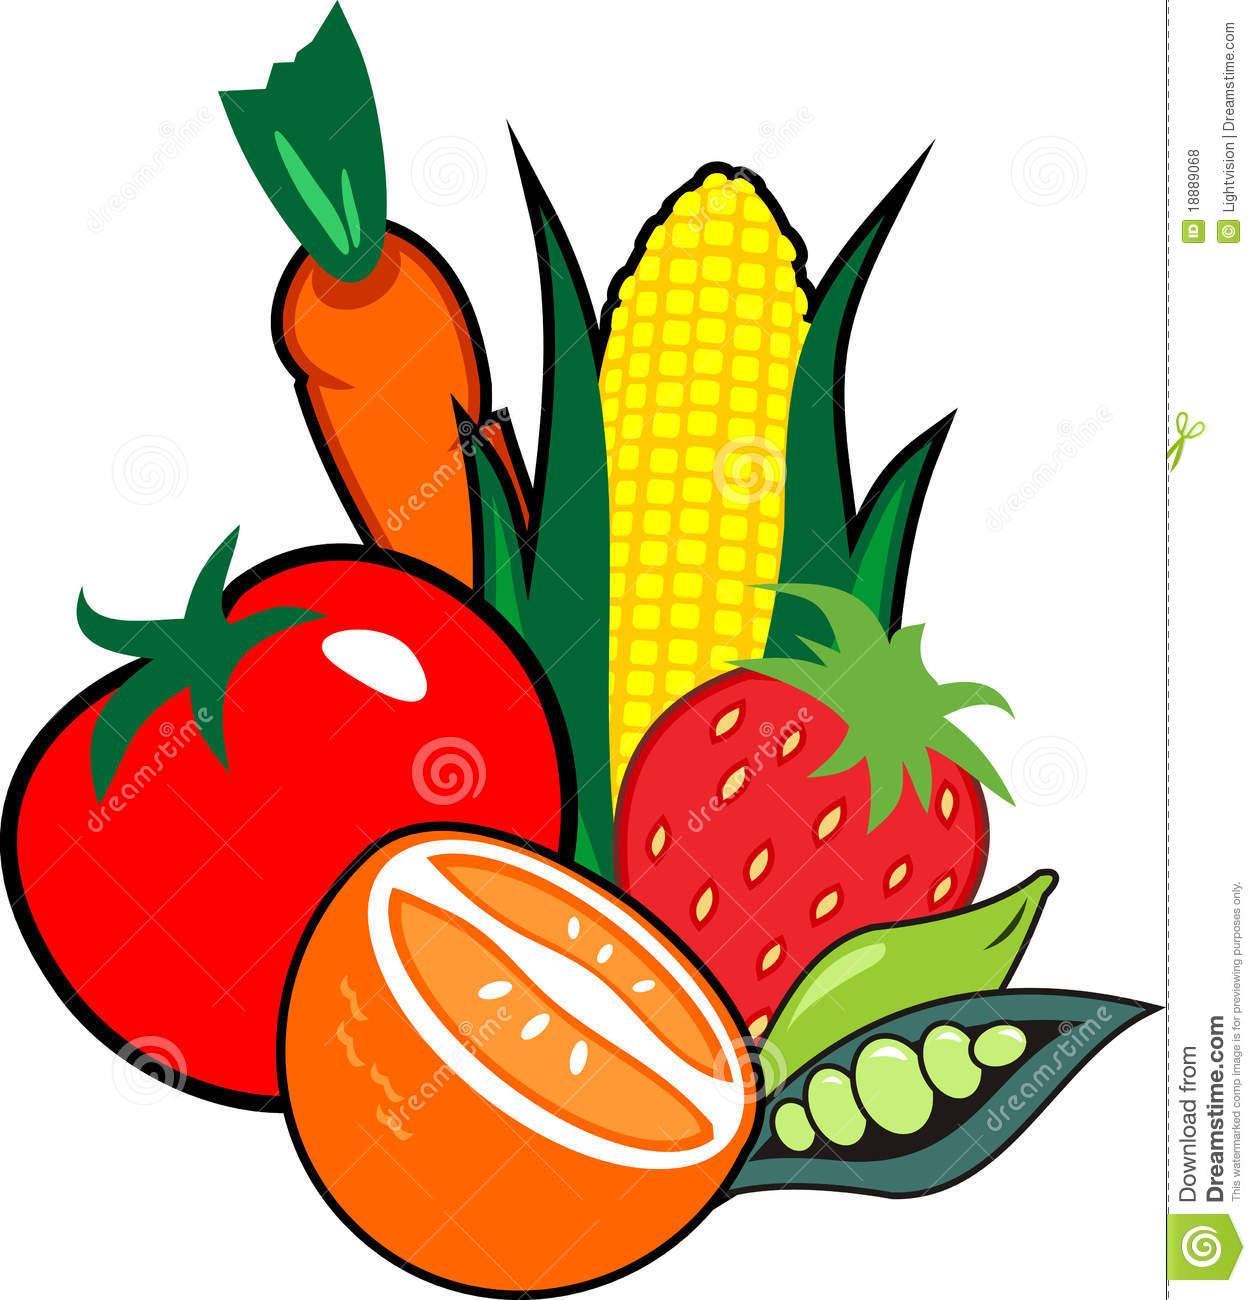 Snack clipart fruits and veggy Veggies Fruits And Download Veggies